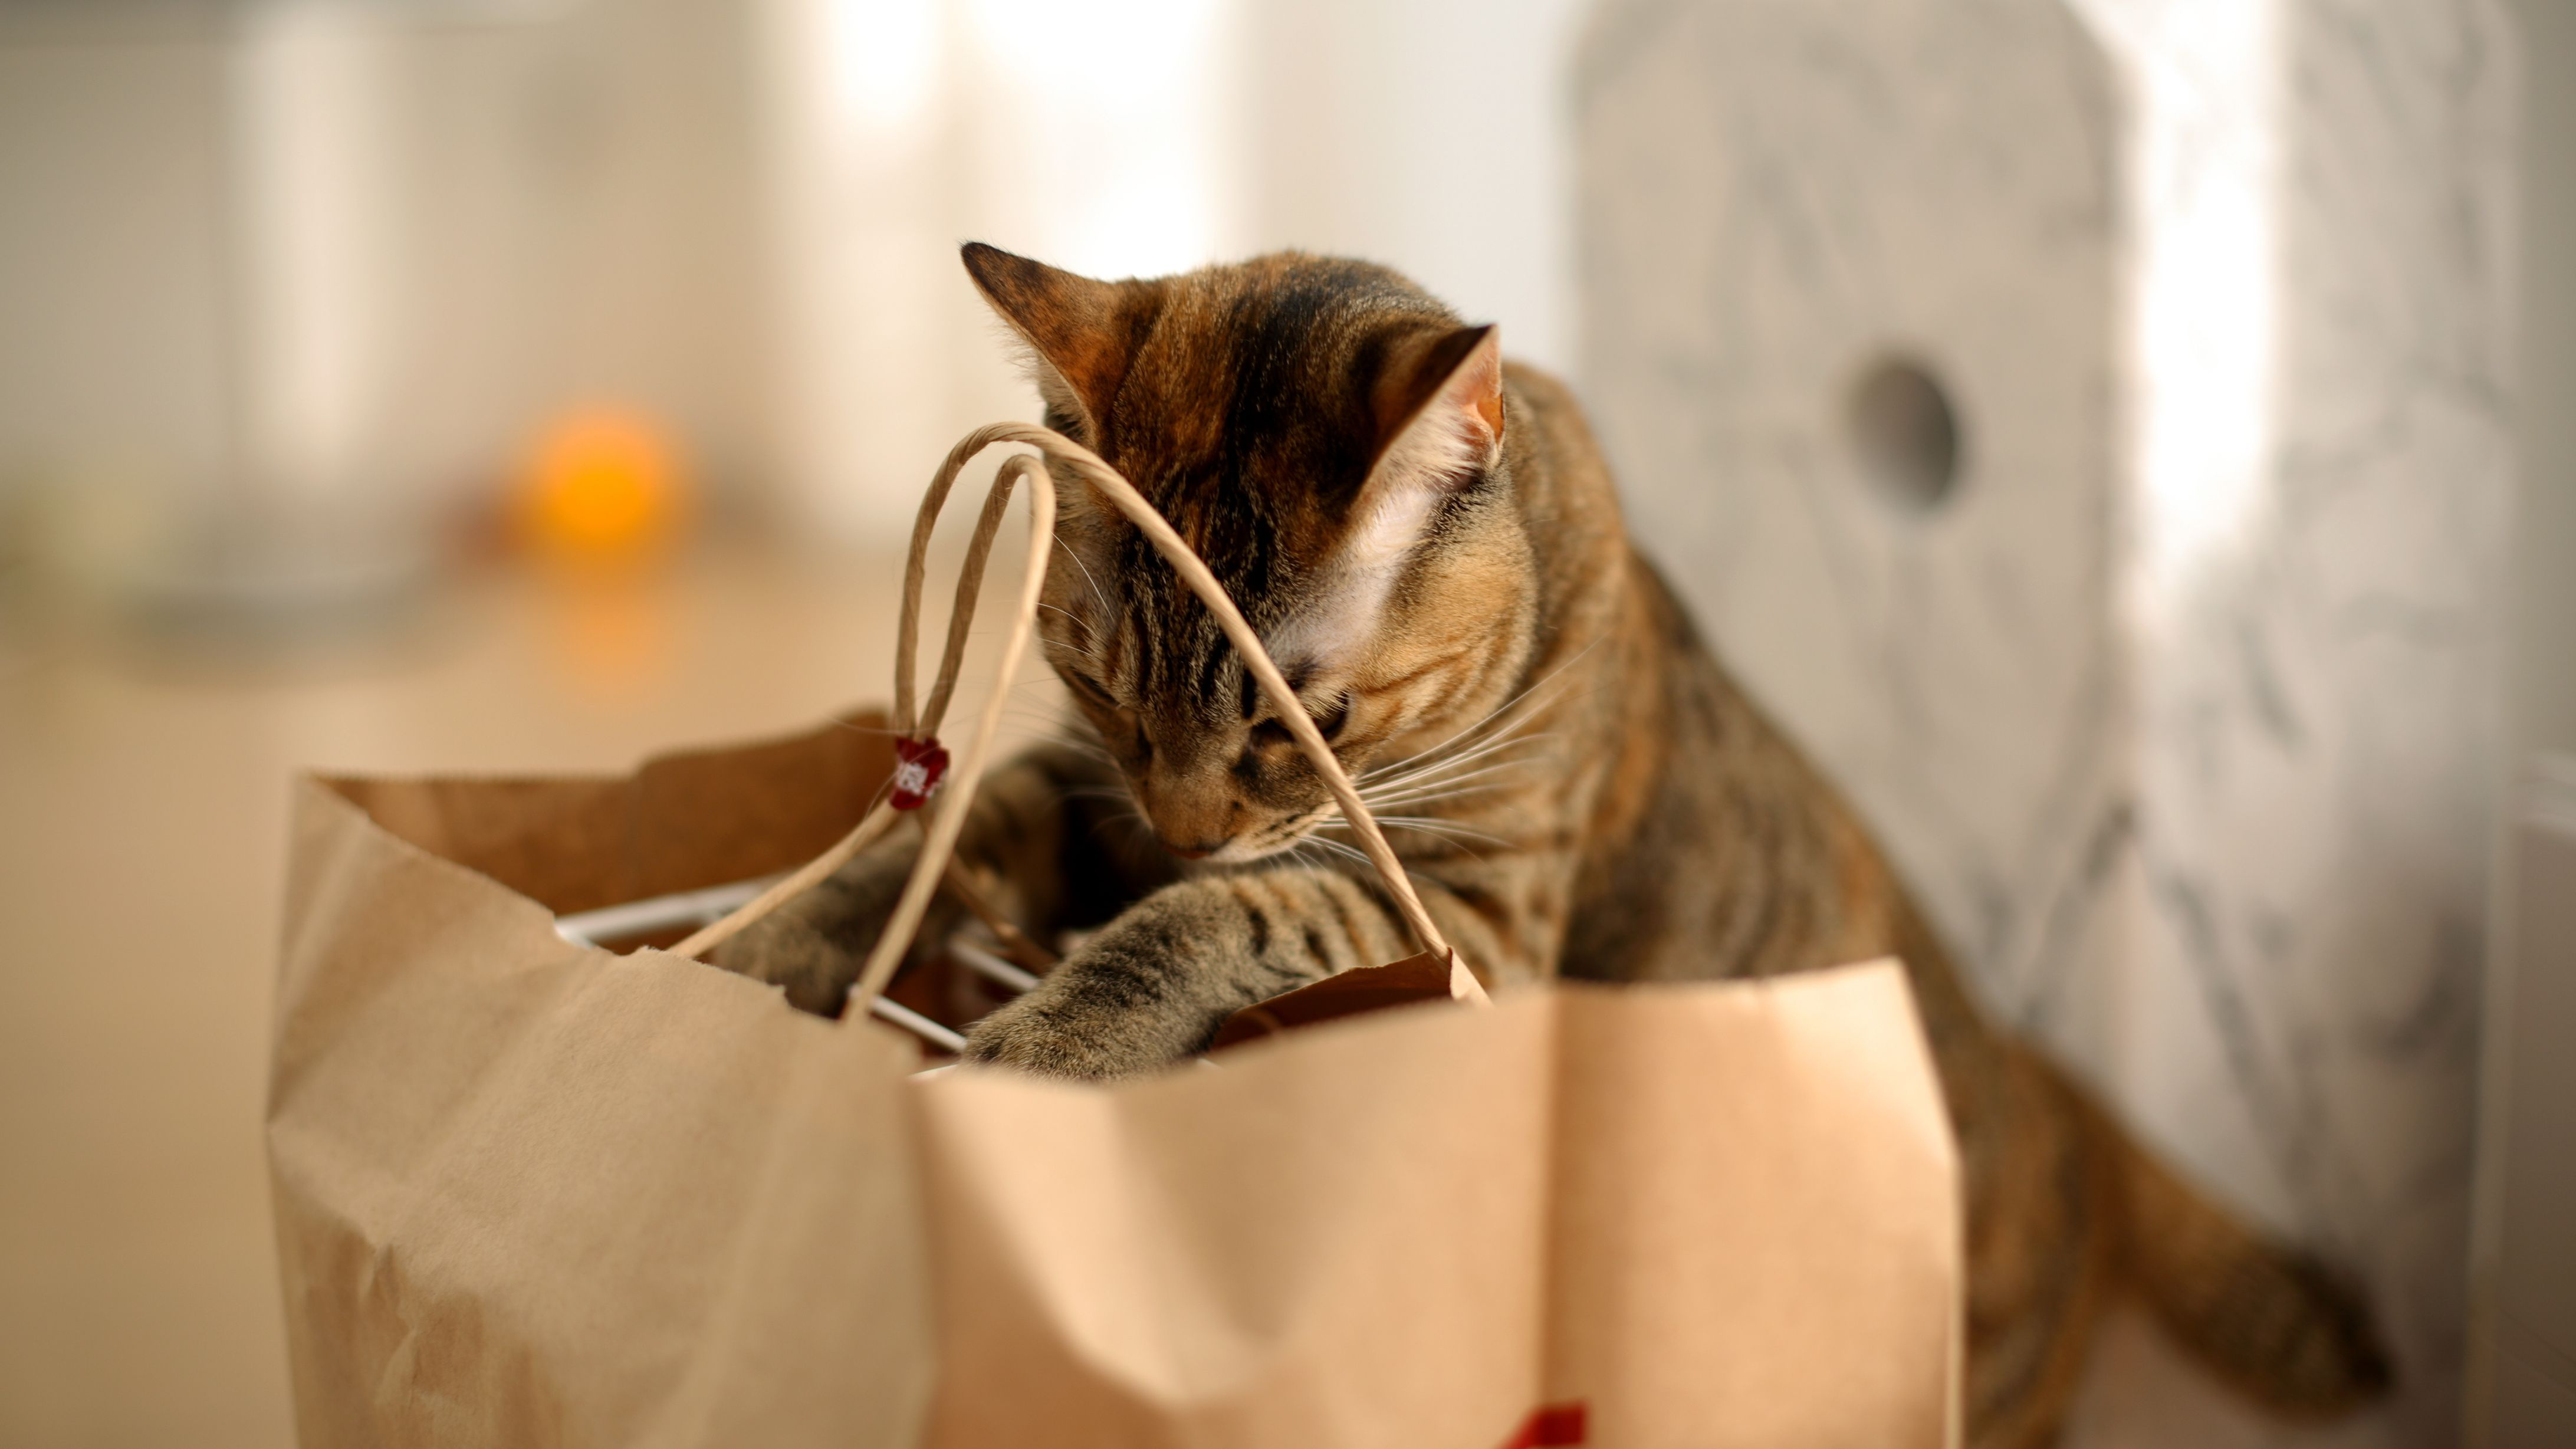 What To Buy For Your New Cat